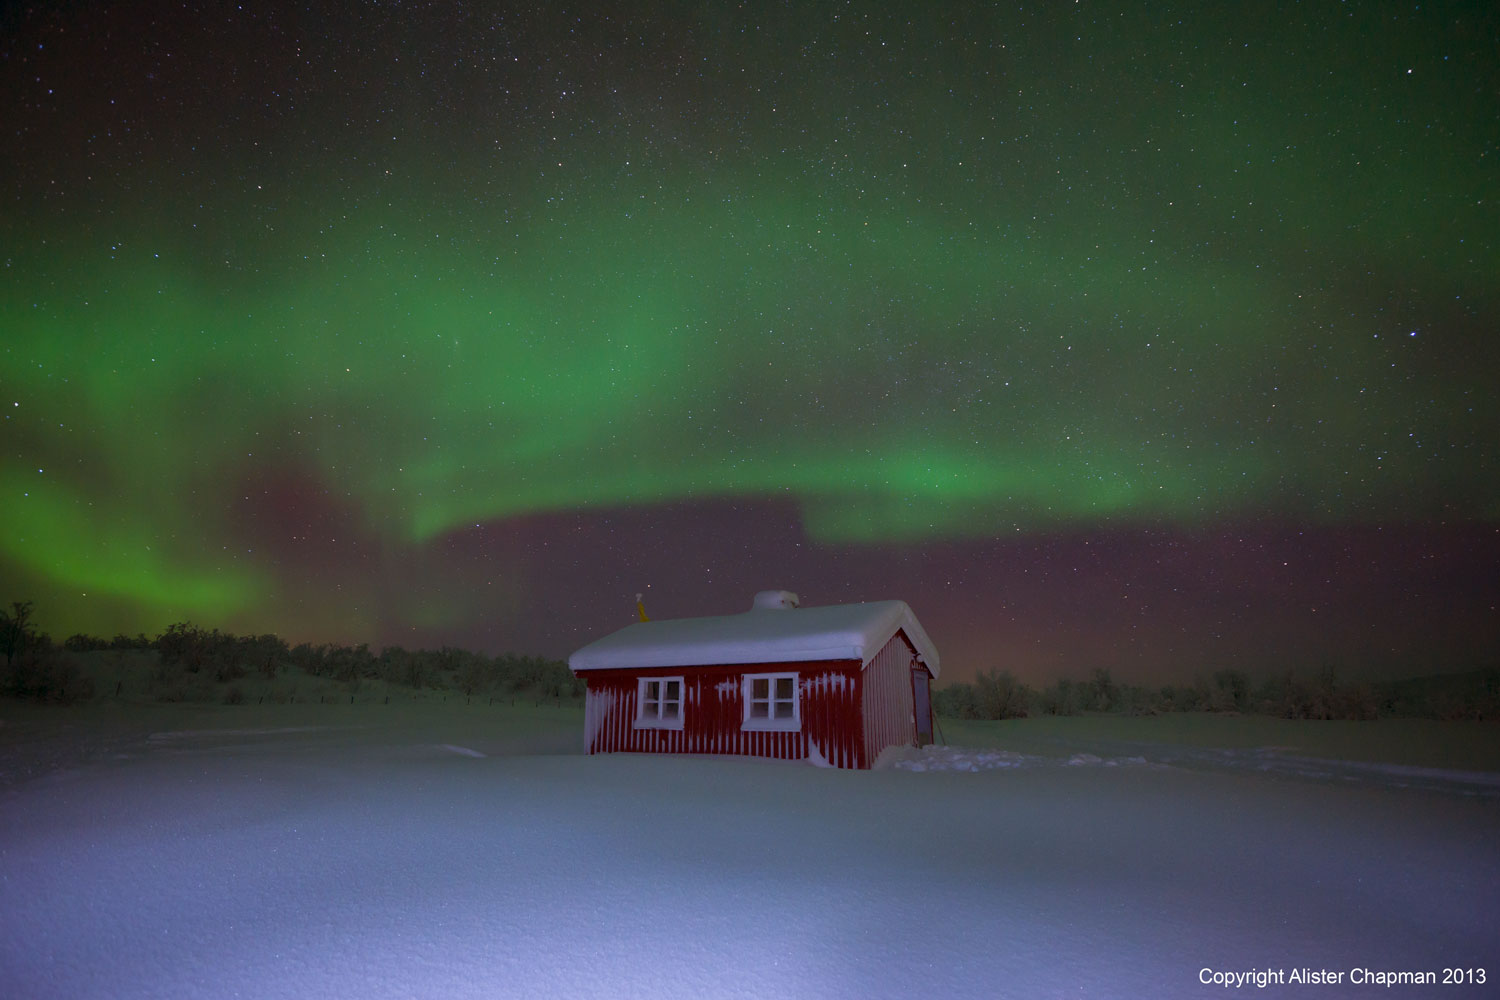 The Aurora shines bright above one of the cabins.